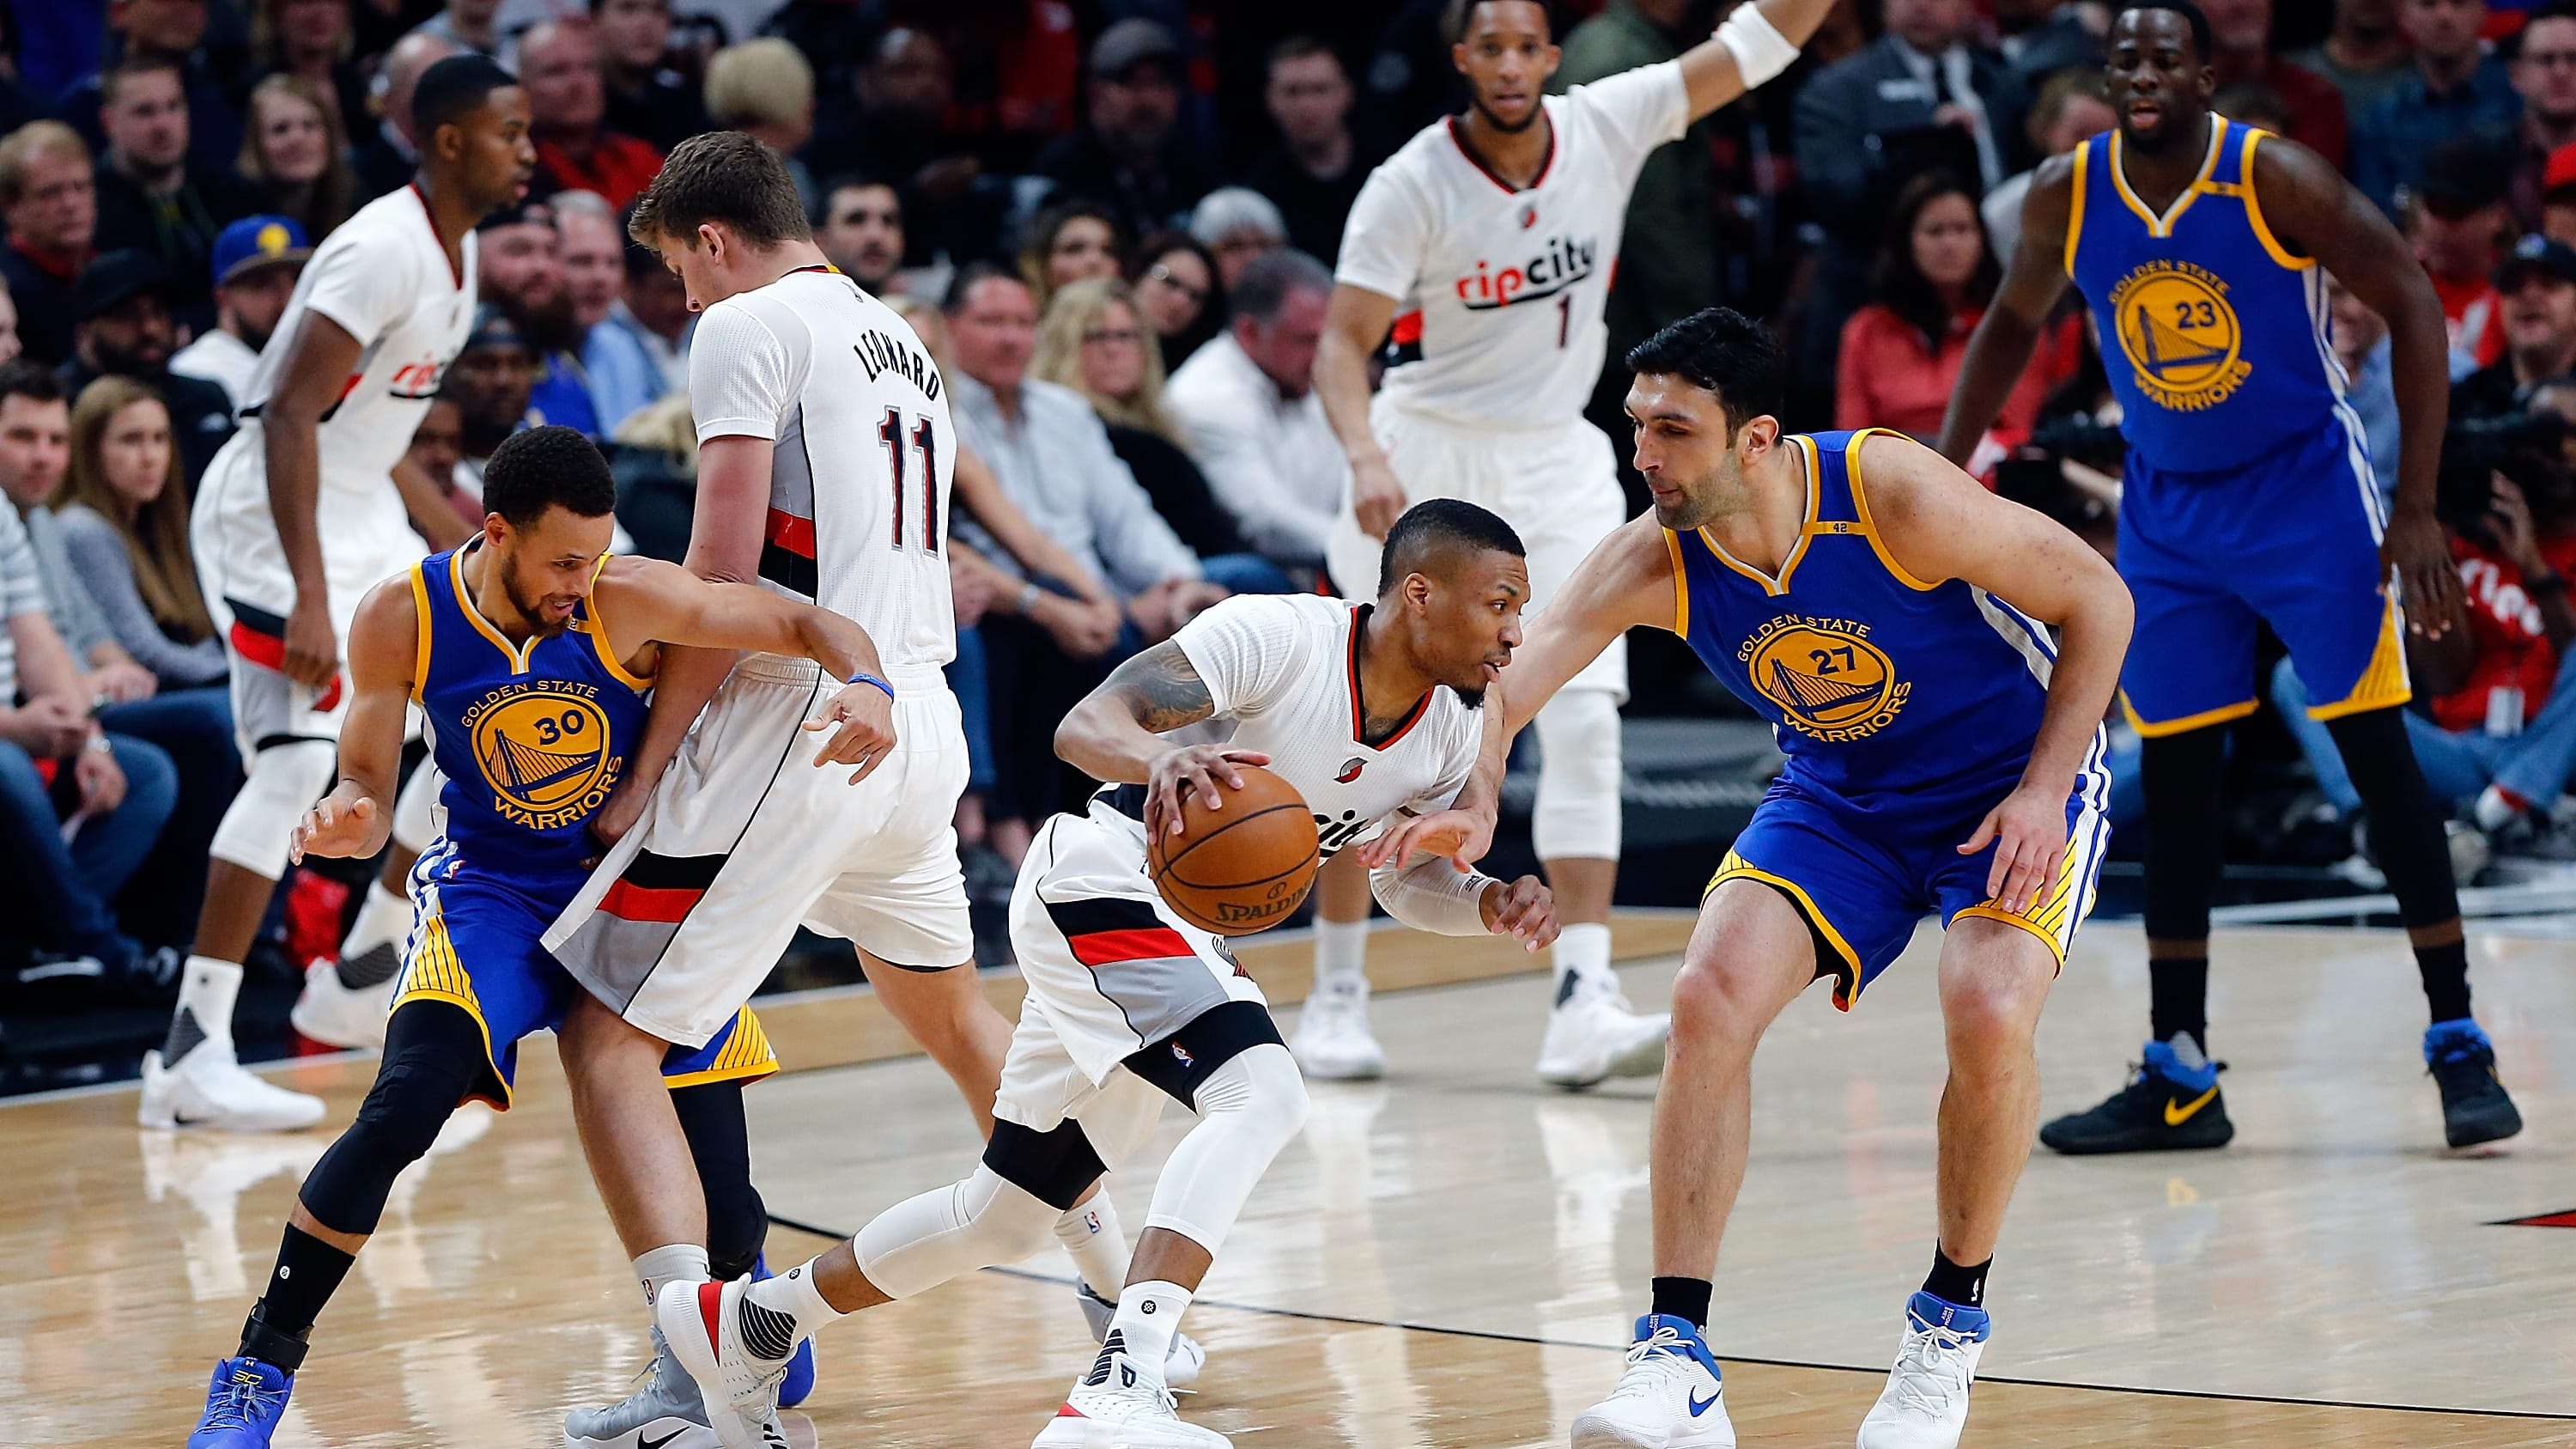 PORTLAND, OR - APRIL 24:  Damian Lillard #0 of the Portland Trail Blazers drives against the Golden State Warriors during Game Four of the Western Conference Quarterfinals of  the 2017 NBA Playoffs at Moda Center on April 24, 2017 in Portland, Oregon.  NOTE TO USER: User expressly acknowledges and agrees that, by downloading and or using this photograph, User is consenting to the terms and conditions of the Getty Images License Agreement.  (Photo by Jonathan Ferrey/Getty Images)